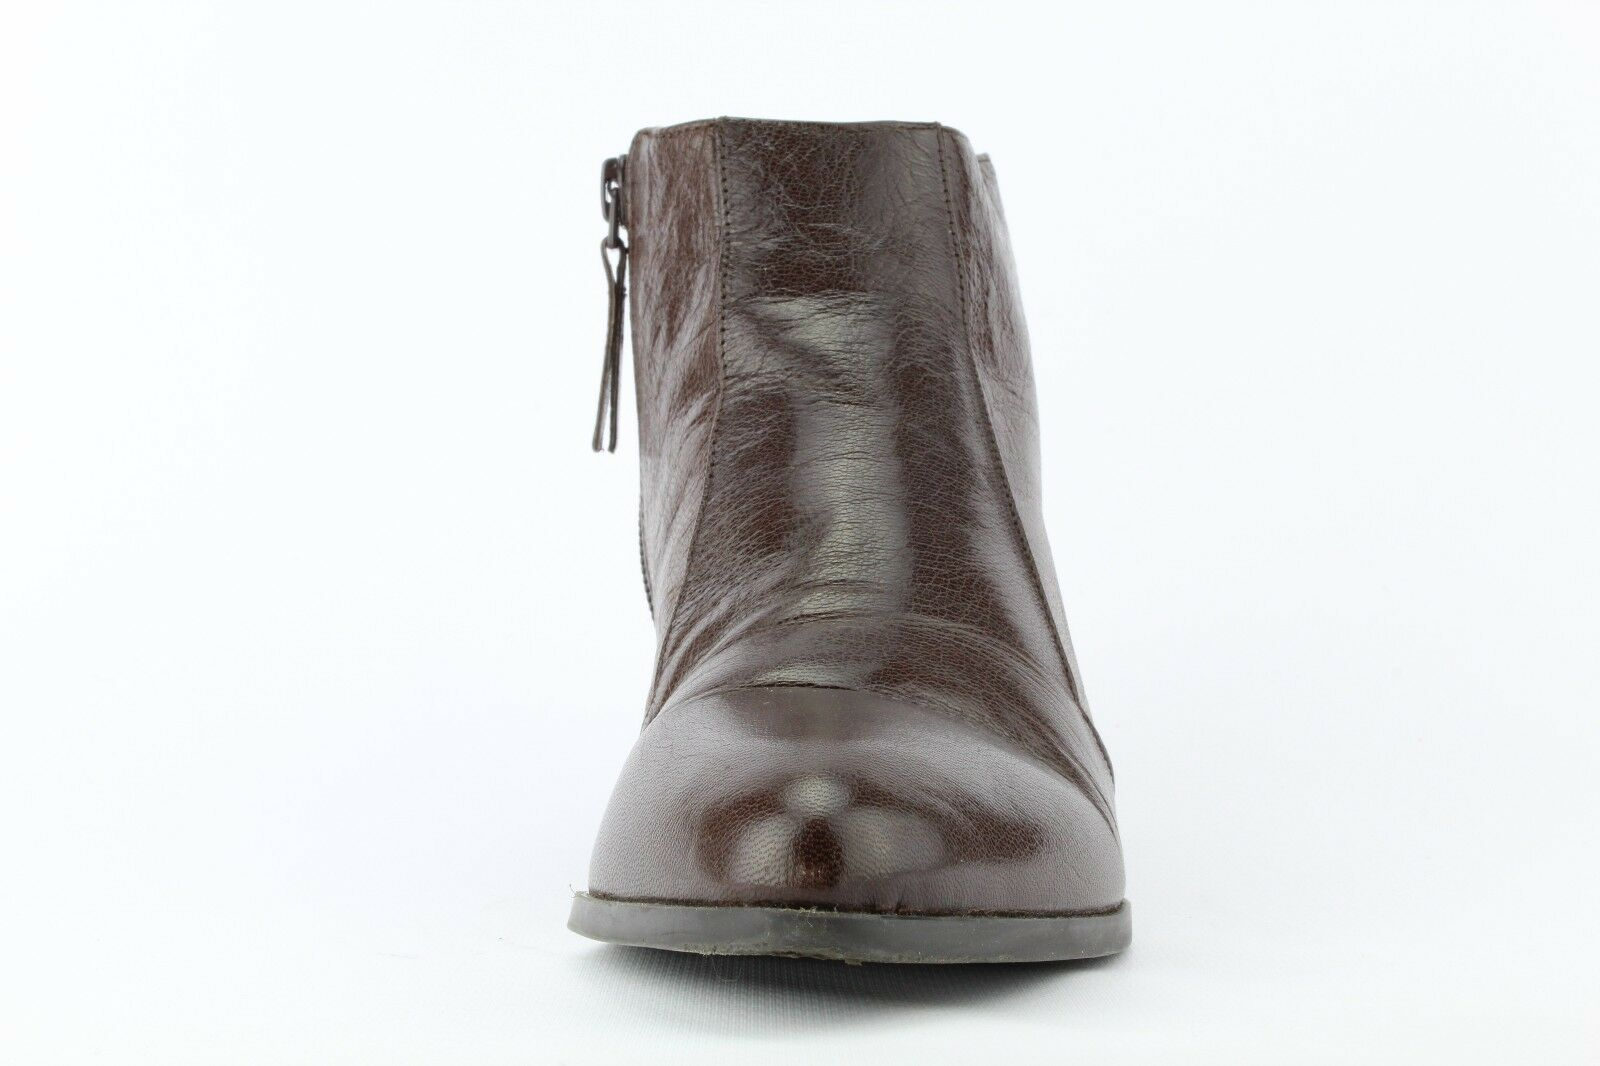 Nine West Women's Brown Brown Brown Leather Dopler Zip Bootie Size 7M 57a0a1